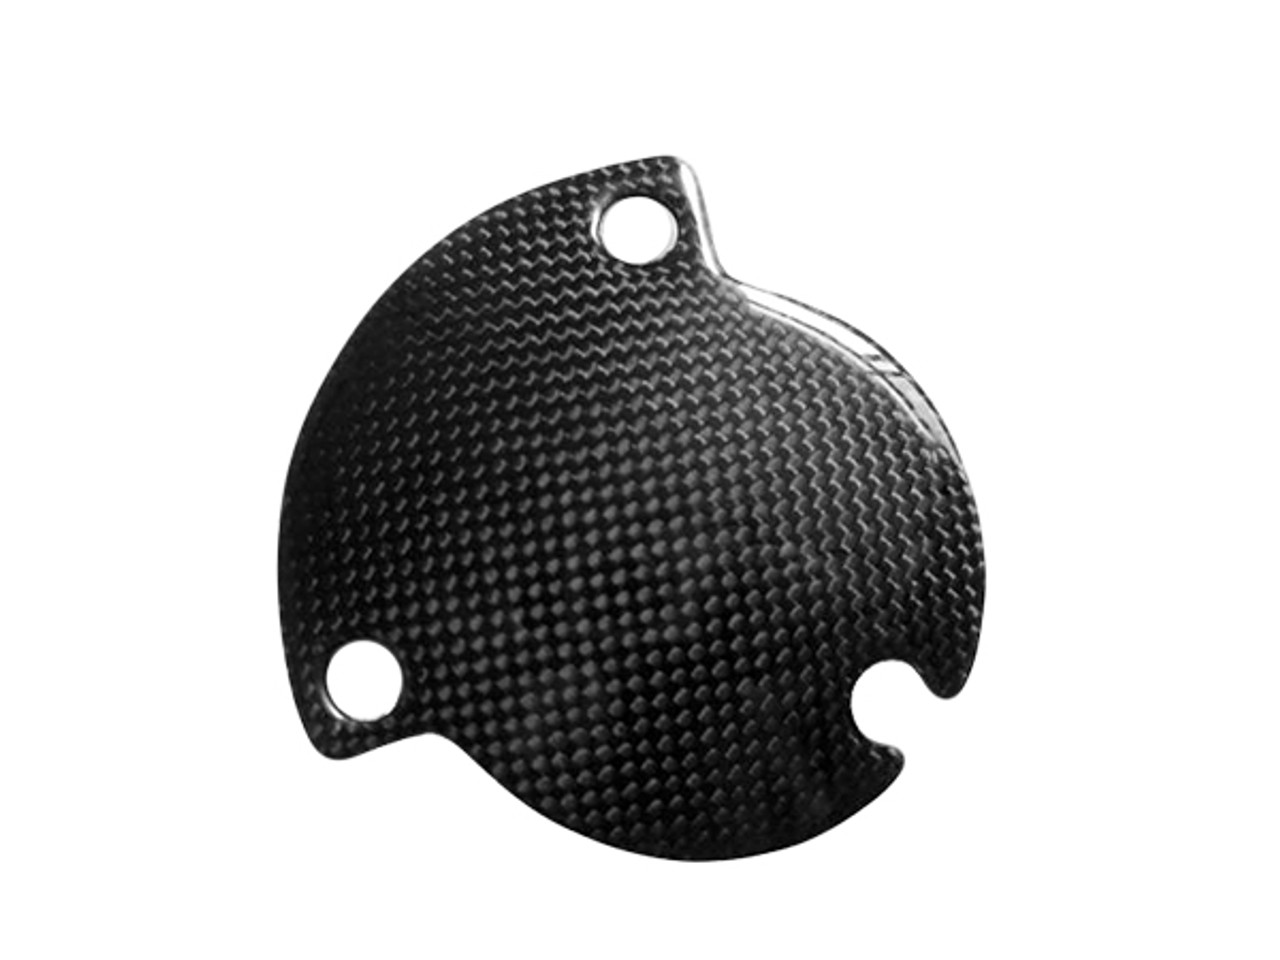 Service Plate Covers in 100% Carbon Fiber for Buell XB9,XB12 05-09